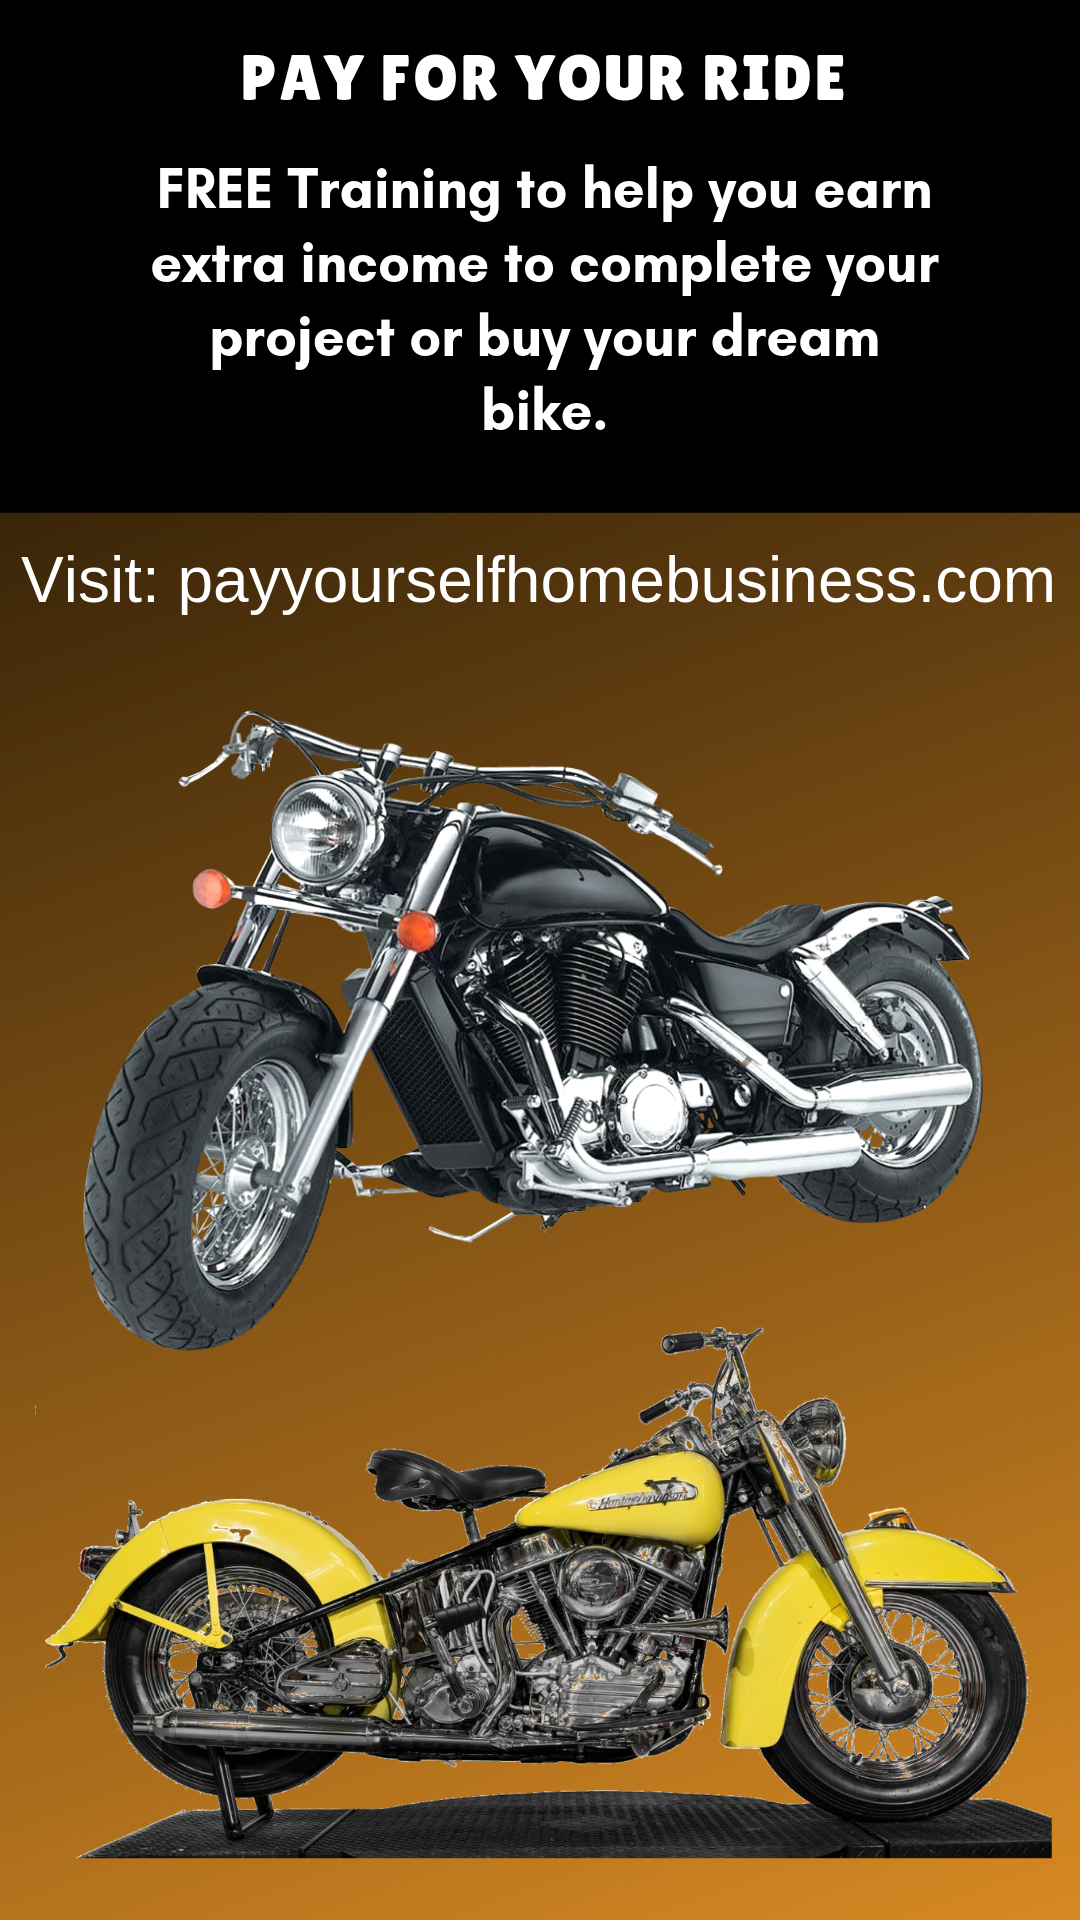 Buy Your Motorcycle >> Earn Income To Buy Your Motorcycle Side Car Free